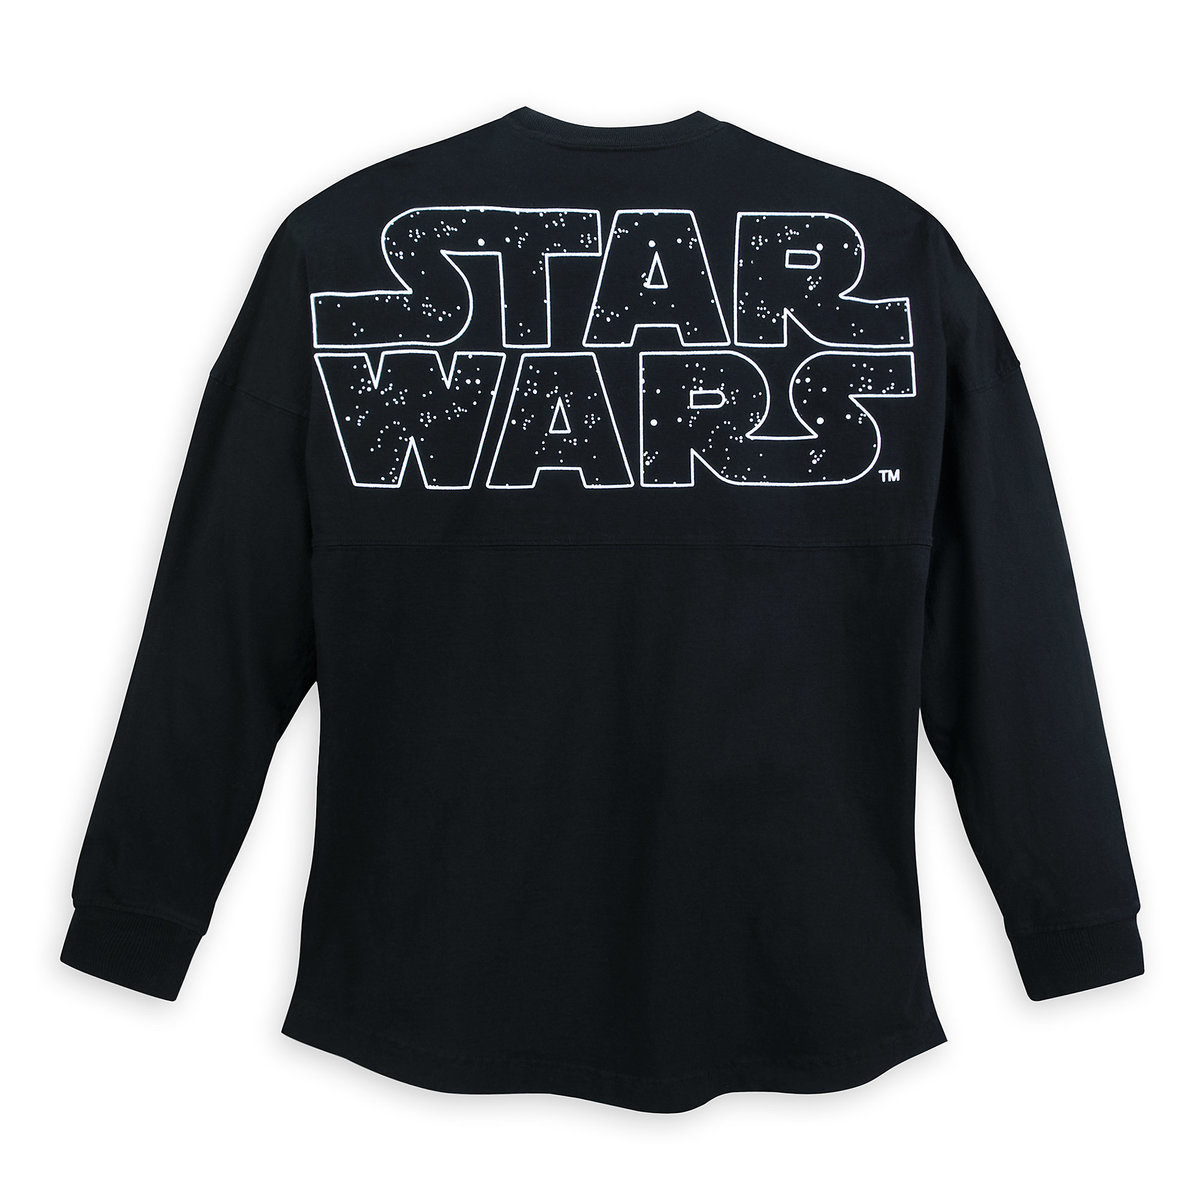 8d7a5deb Product Image of Stormtrooper Spirit Jersey for Adults # 2